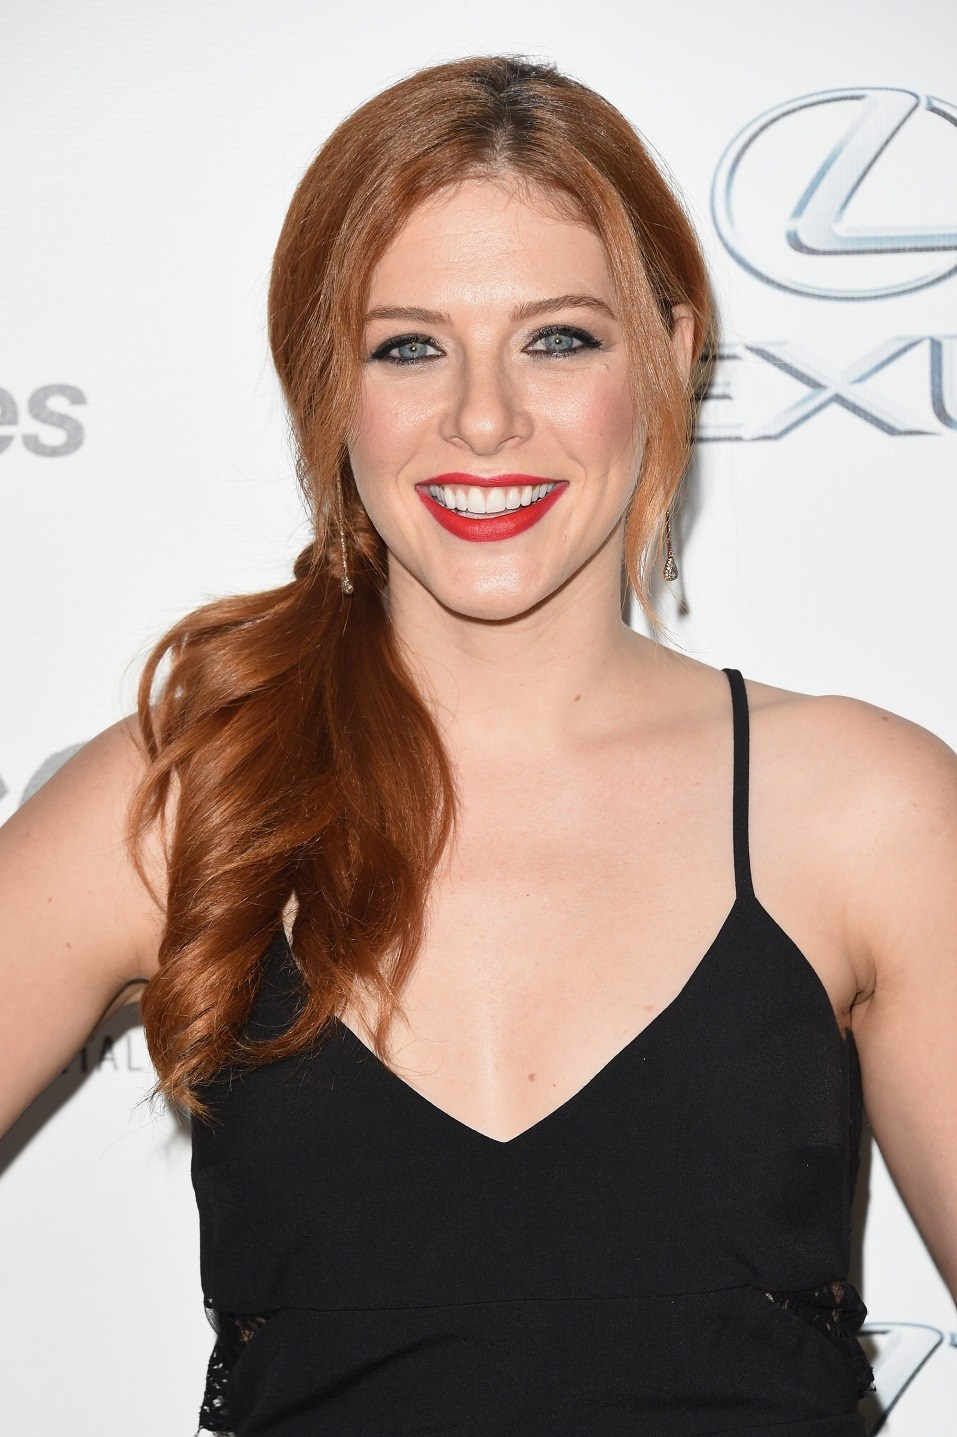 Actress Rachelle Lefevre attends the 24th Annual Environmental Media Awards